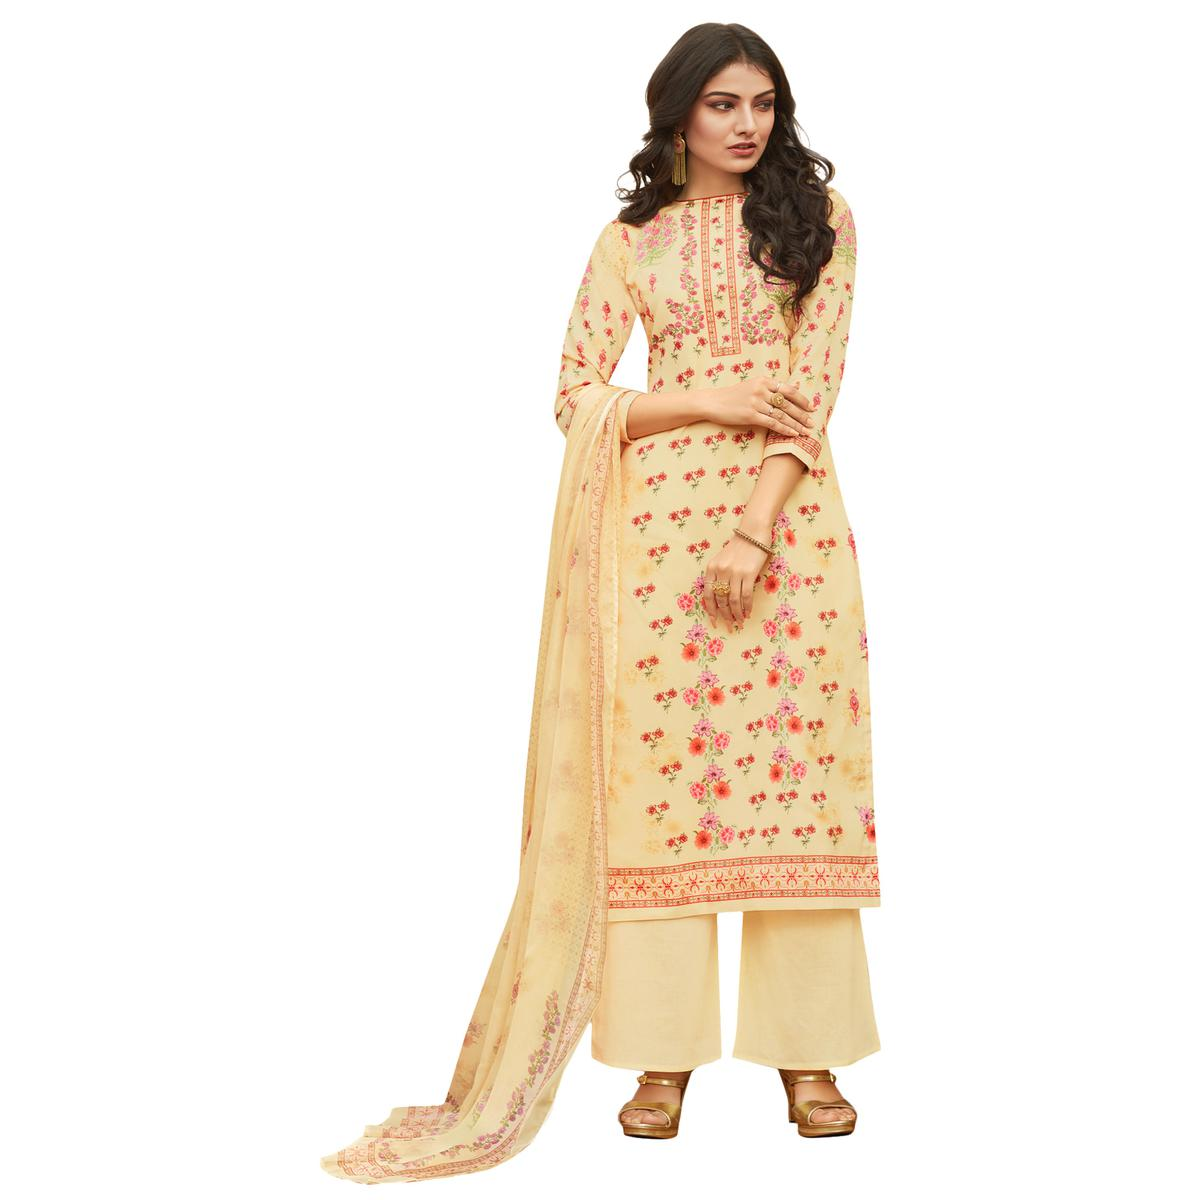 Beige Colored Digital Printed Pure Cotton Dress Material